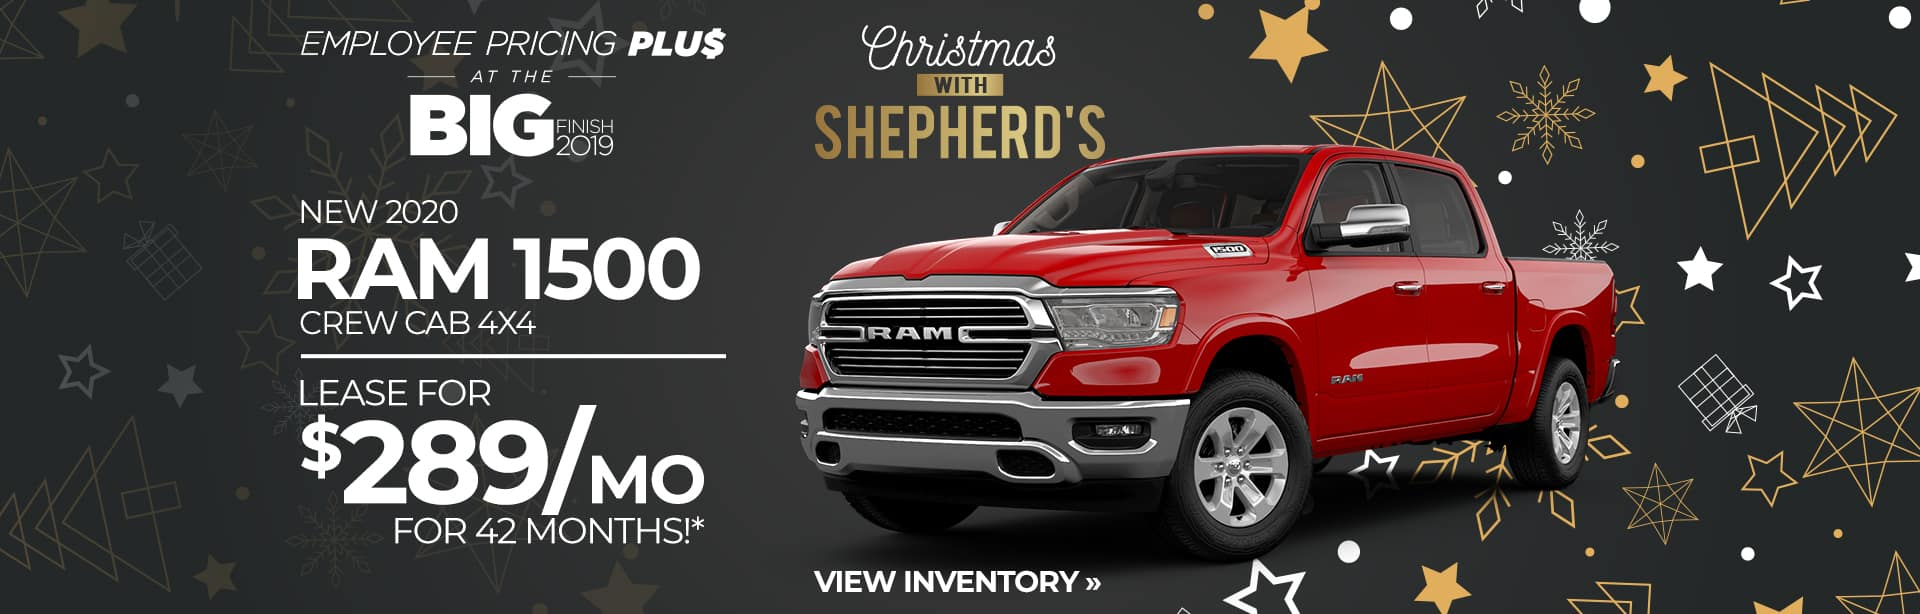 Lease Special on an All-New Ram 1500 Near Fort Wayne, Indiana